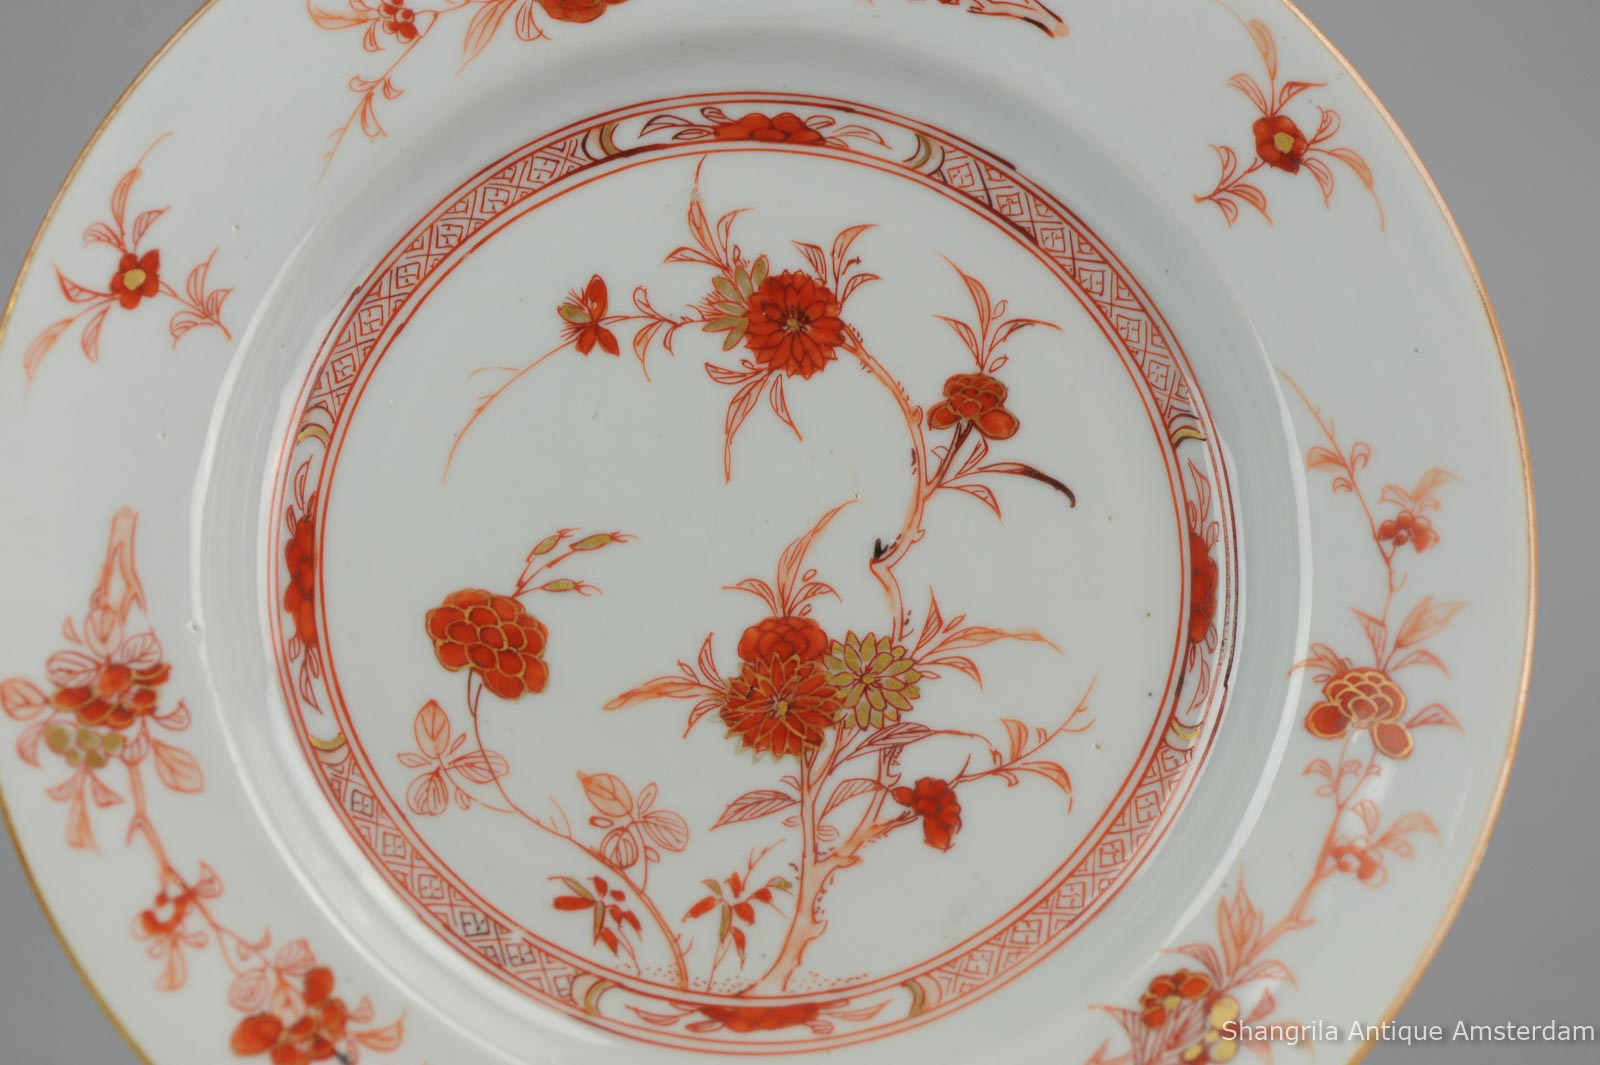 Antique 18th c Chinese Porcelain Rouge de Fer Plate Qing Kangxi /Yongzheng Blood Milk & Shangrila Antique